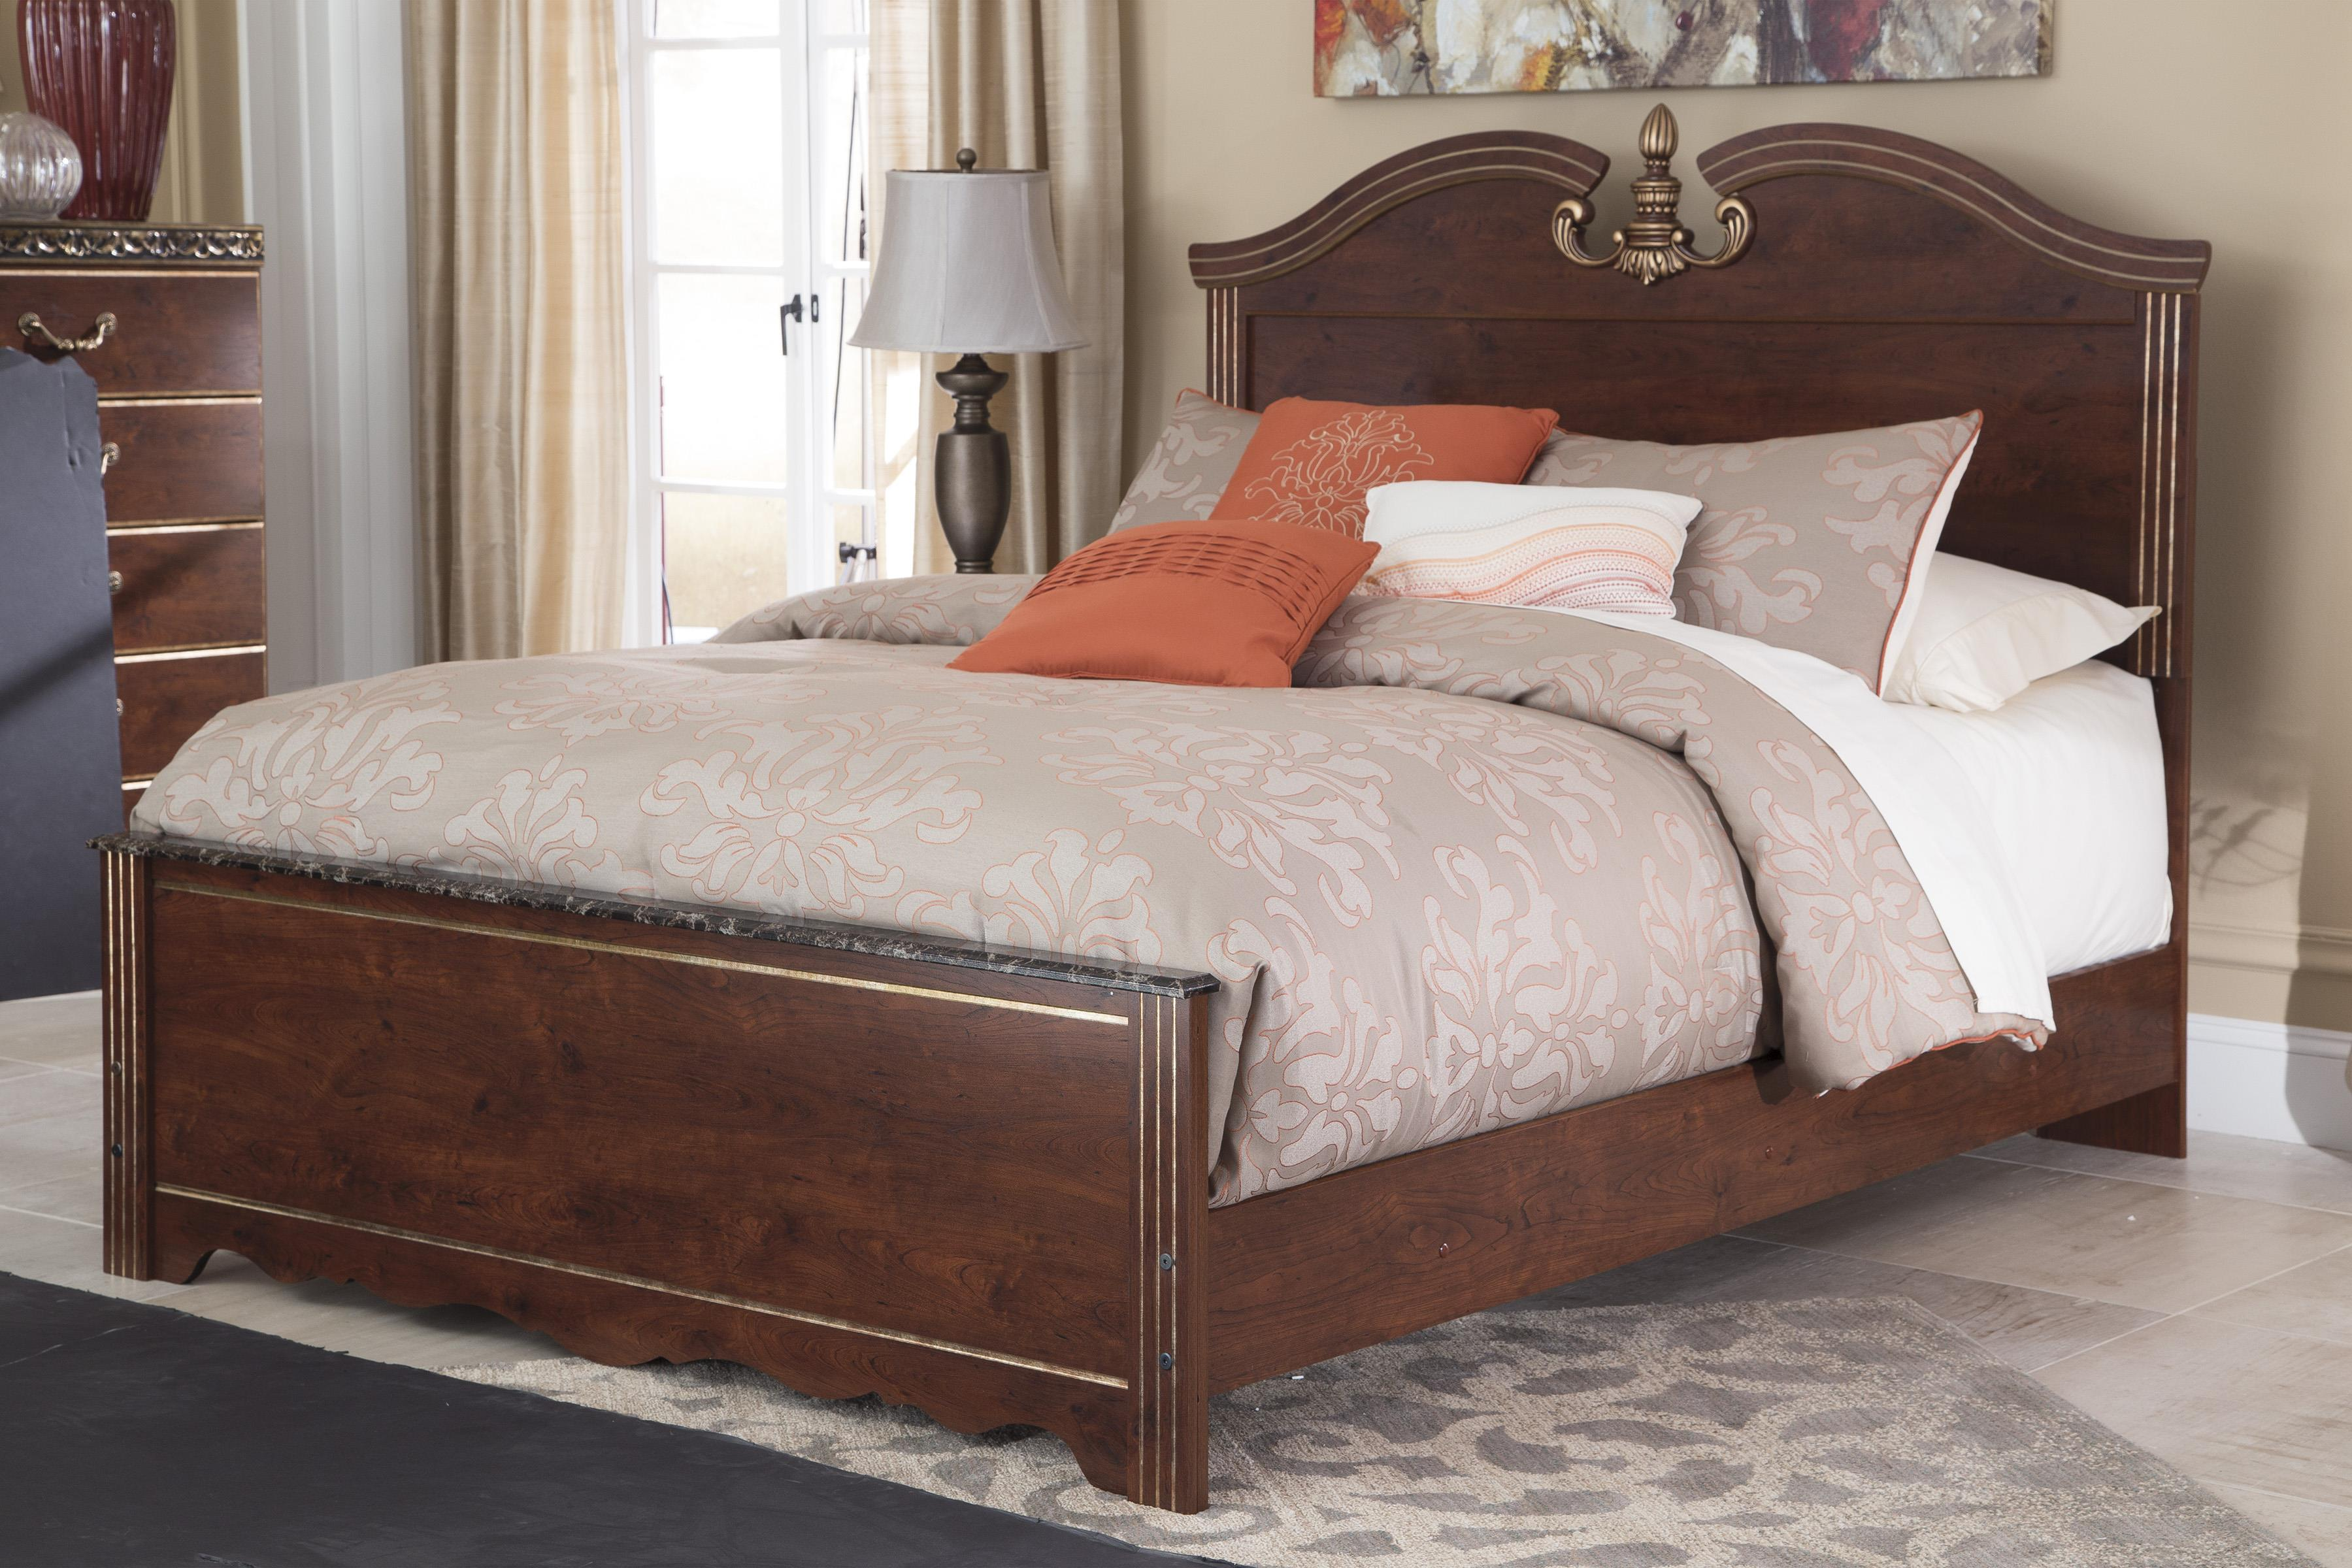 Signature Design by Ashley Naralyn Queen Panel Bed - Item Number: B164-57+96+54